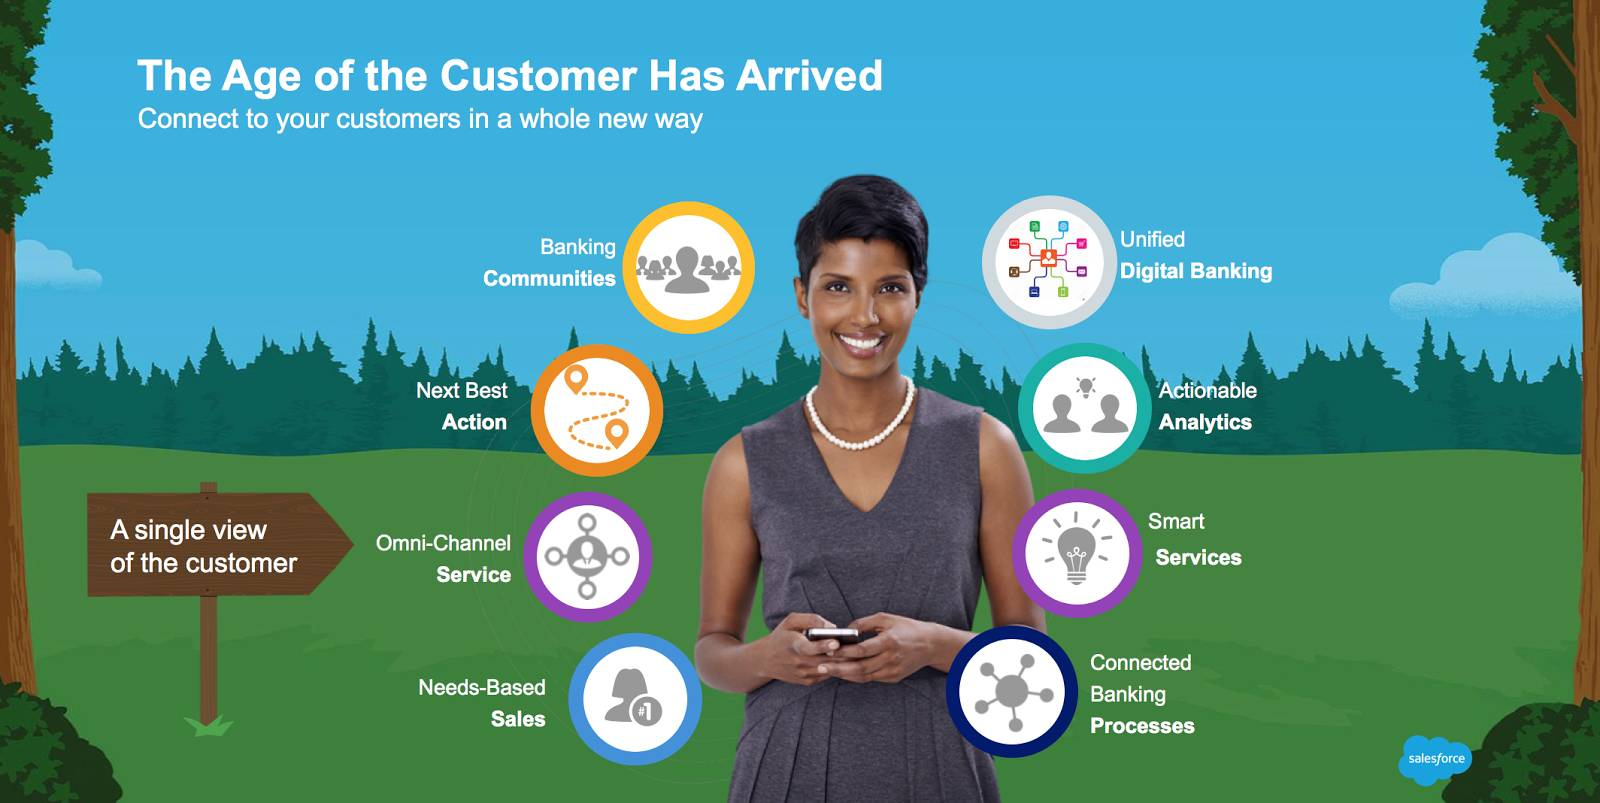 Graphic illustrating the Age of the Customer and the Salesforce services for banks: Unified Digital Banking, Actionable Analytics, Smart Services, Connected Banking Processes, Needs-Based Sales, Omni-Channel Service, Next Best Action, Banking Communities